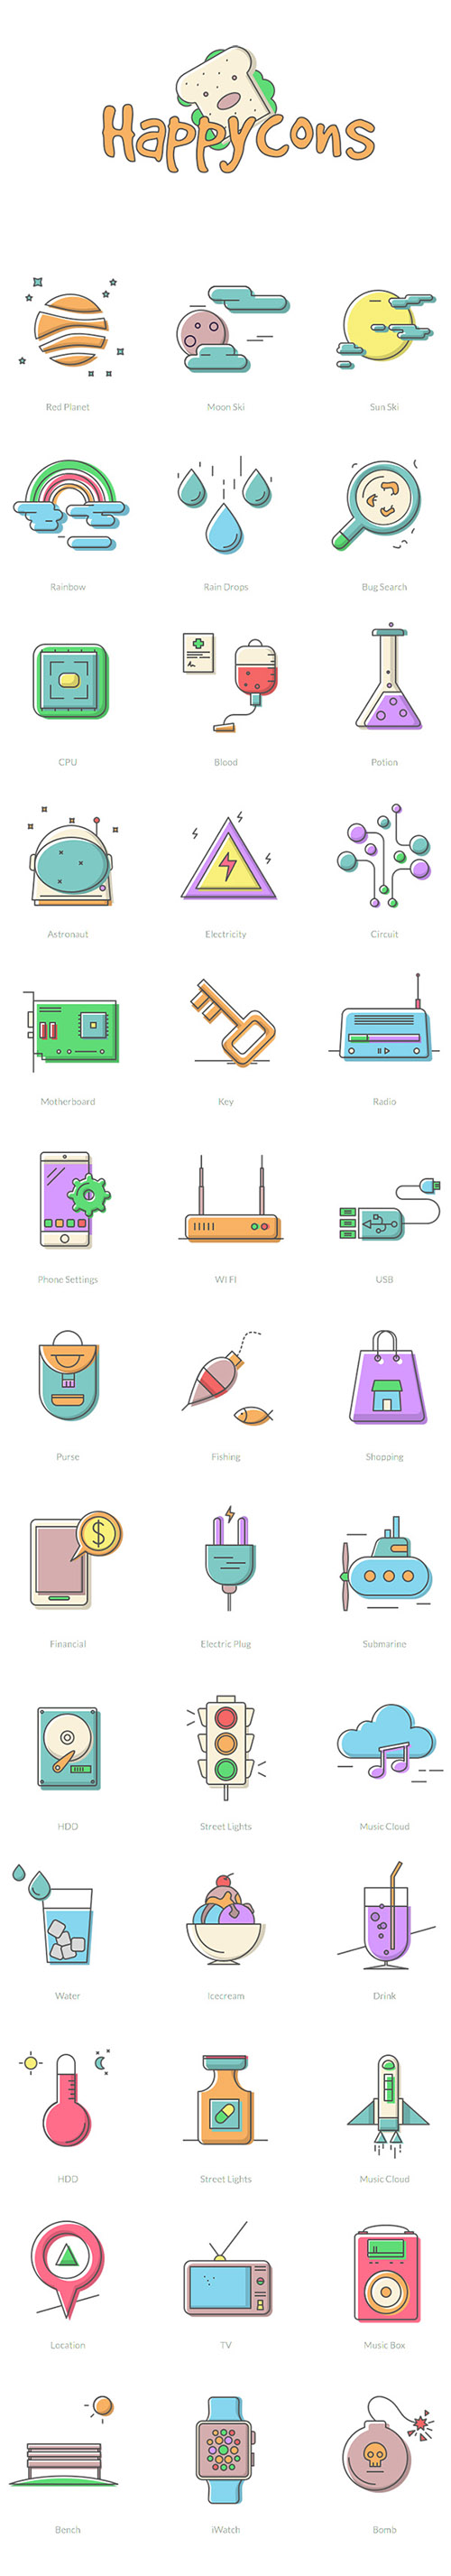 AI, EPS, PNG, SVG, SCETCH Vector Web Icons - Happycons